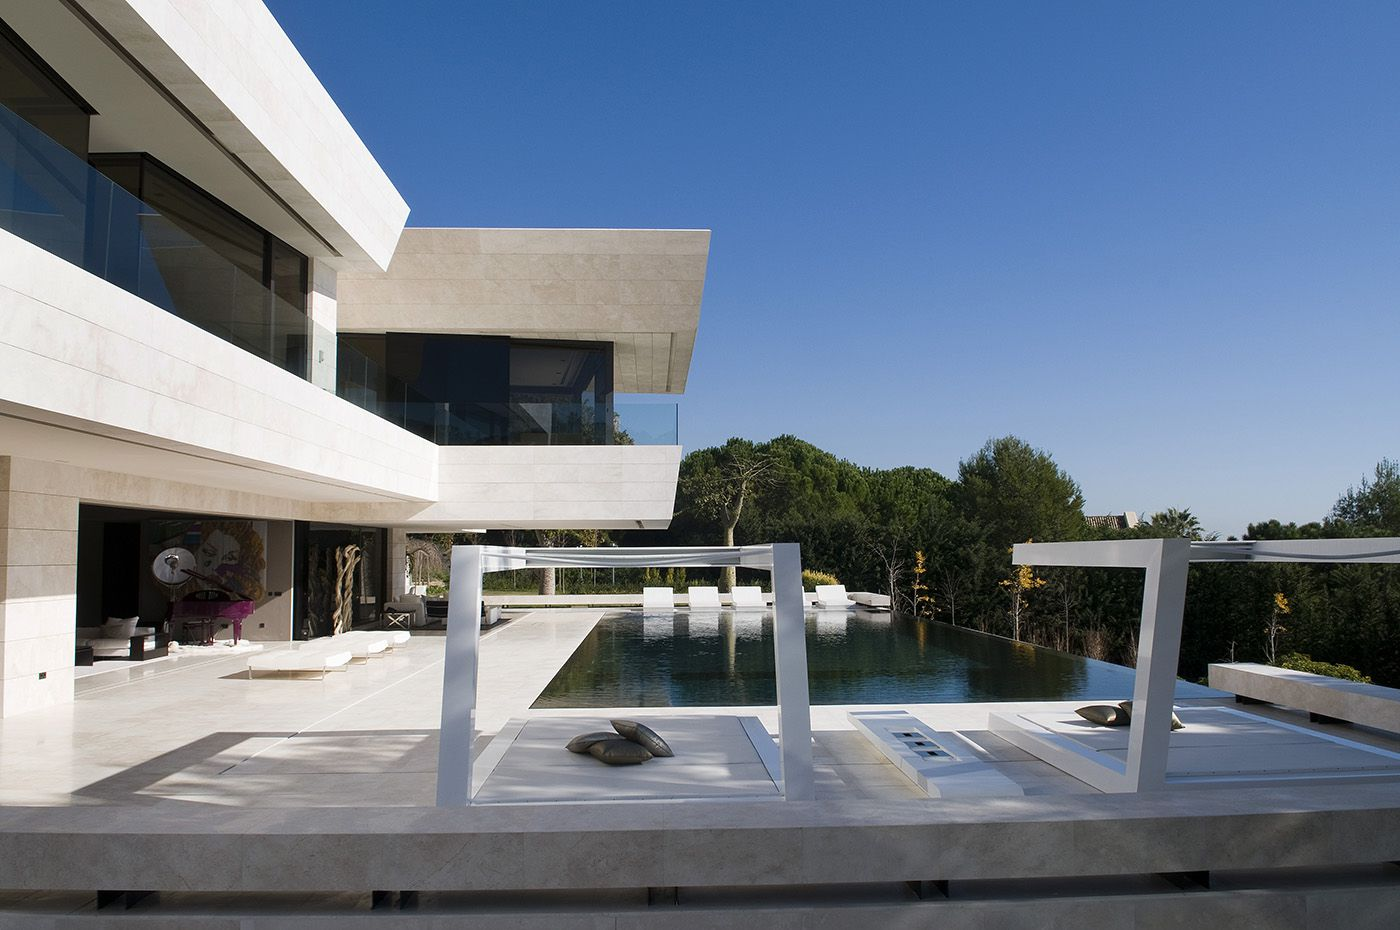 Marbella house by a cero caandesign architecture and home design blog - Joaquin torres casas low cost ...